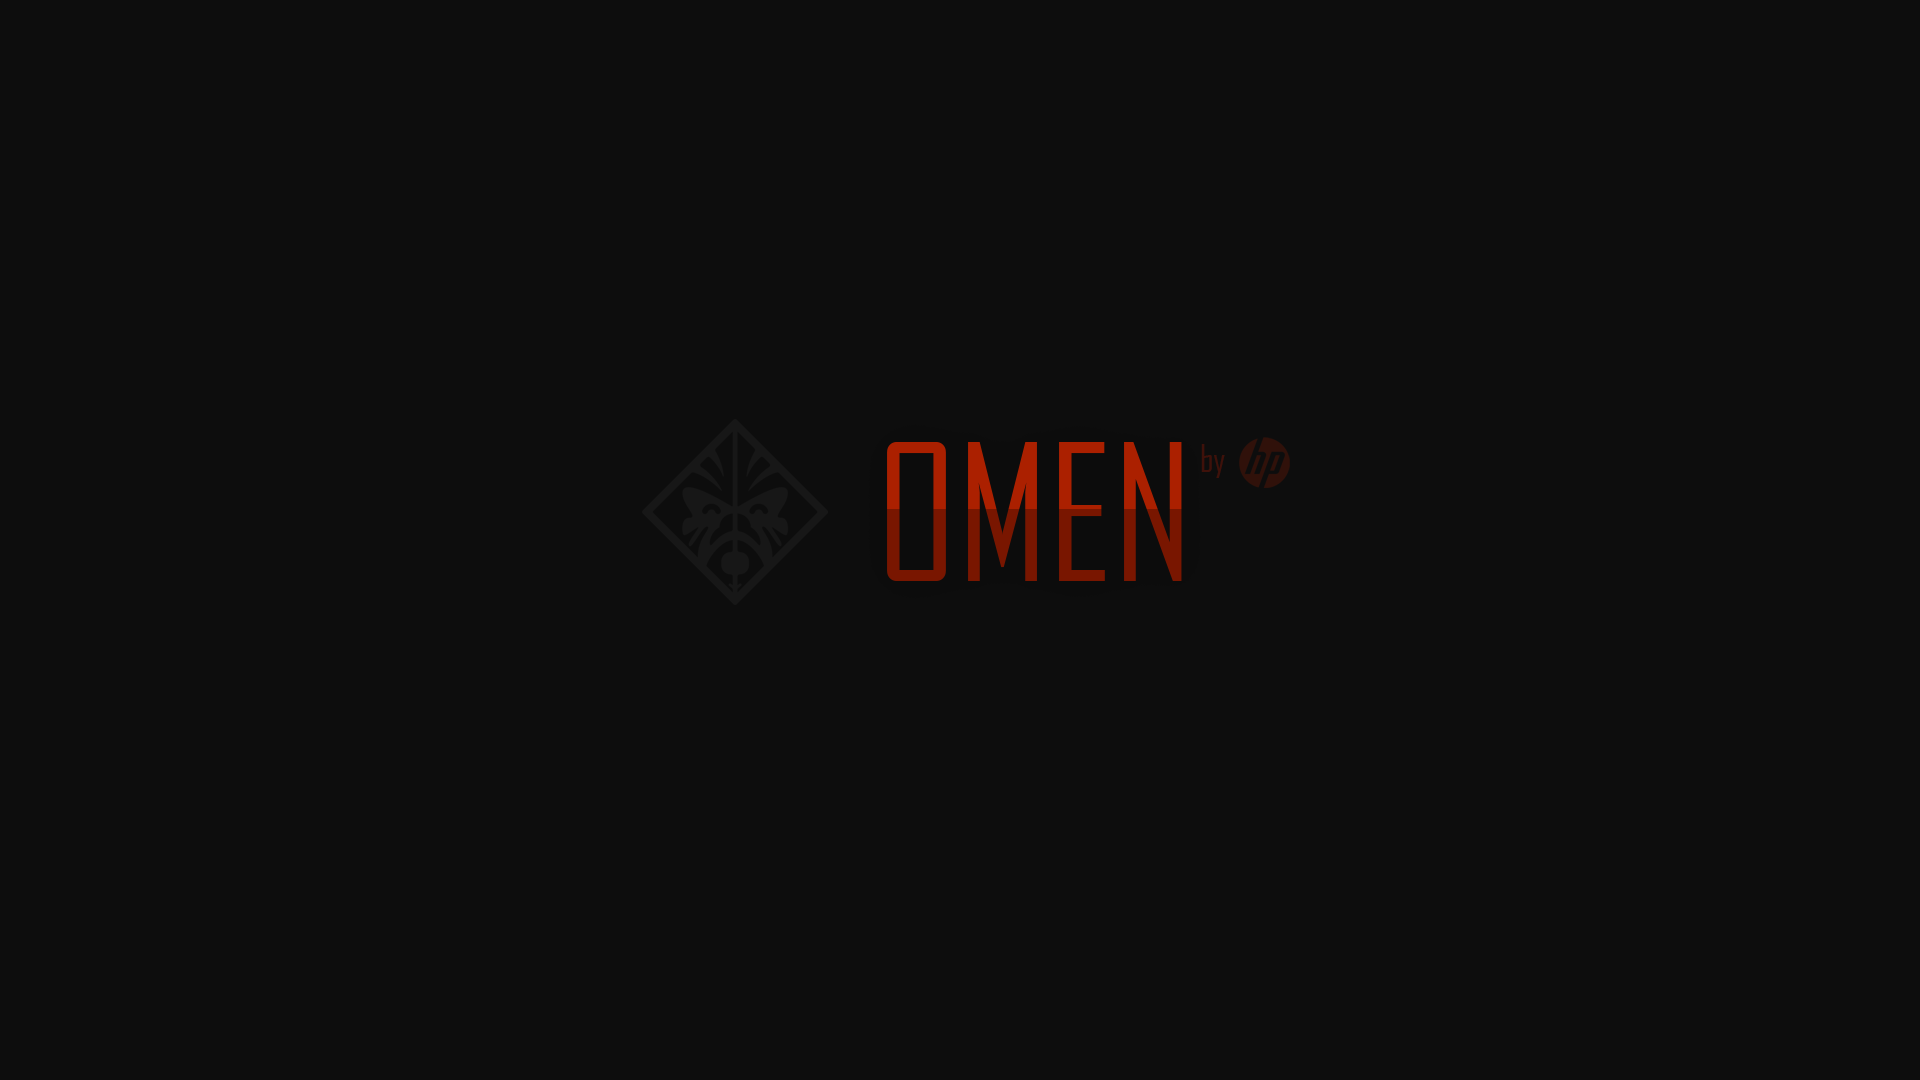 1 Omen Hd Wallpapers Background Images Wallpaper Abyss